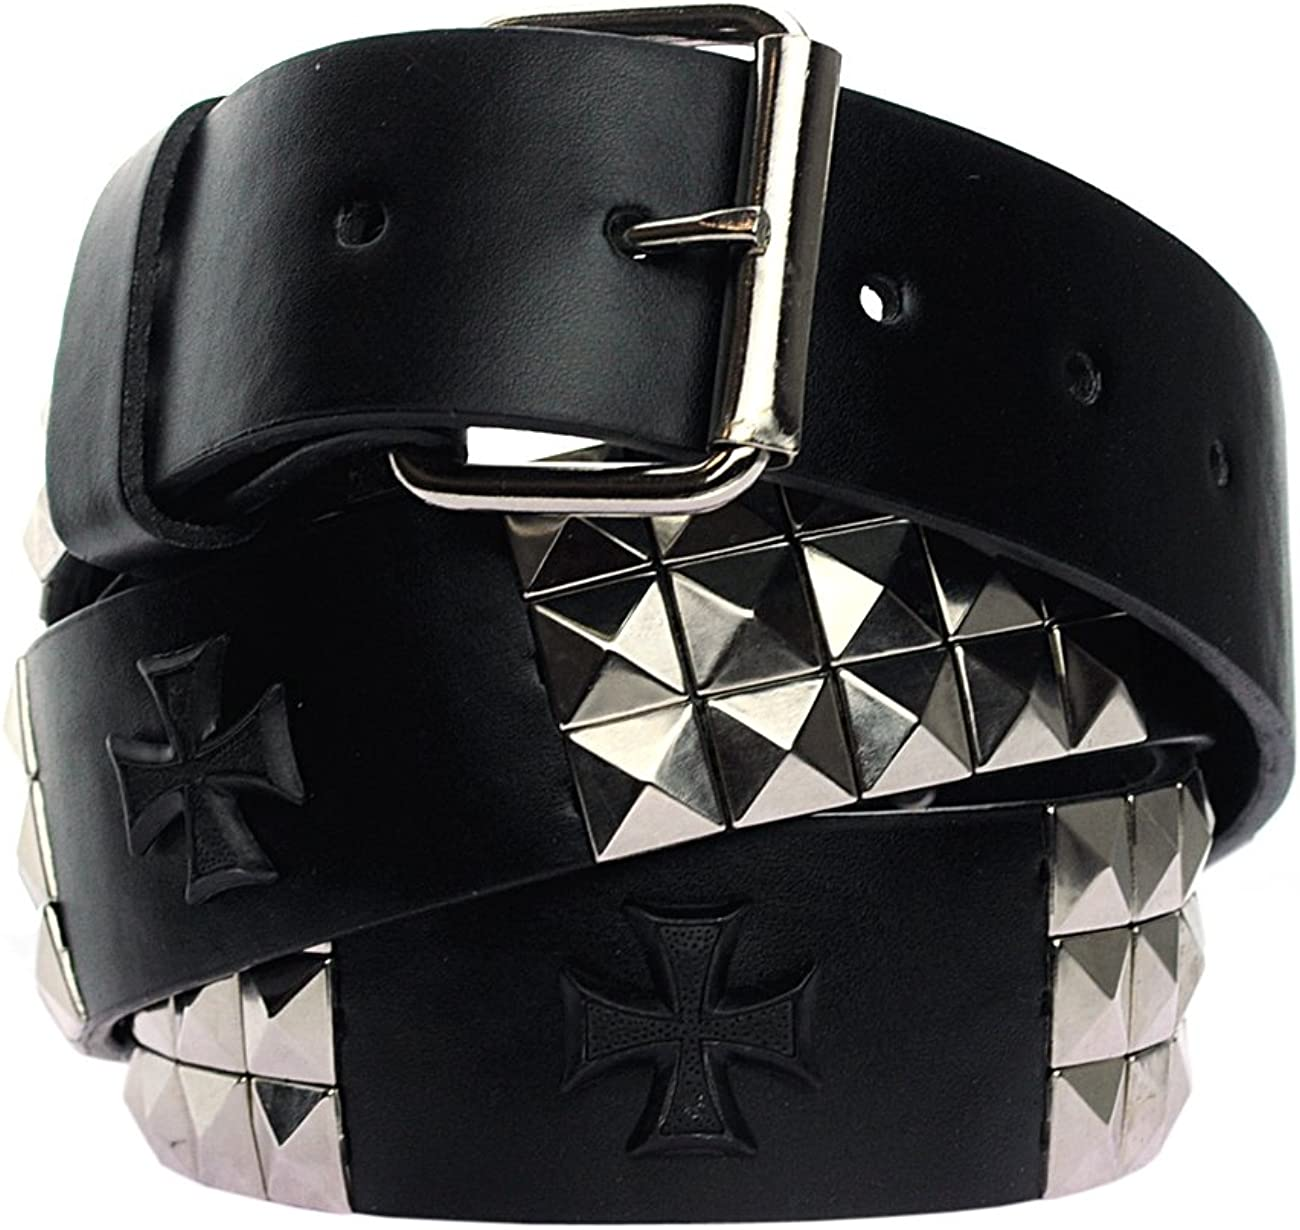 NYFASHION101 Snap On 80s Style Pyramid Stud Faux Leather Belt w//Gothic Cross